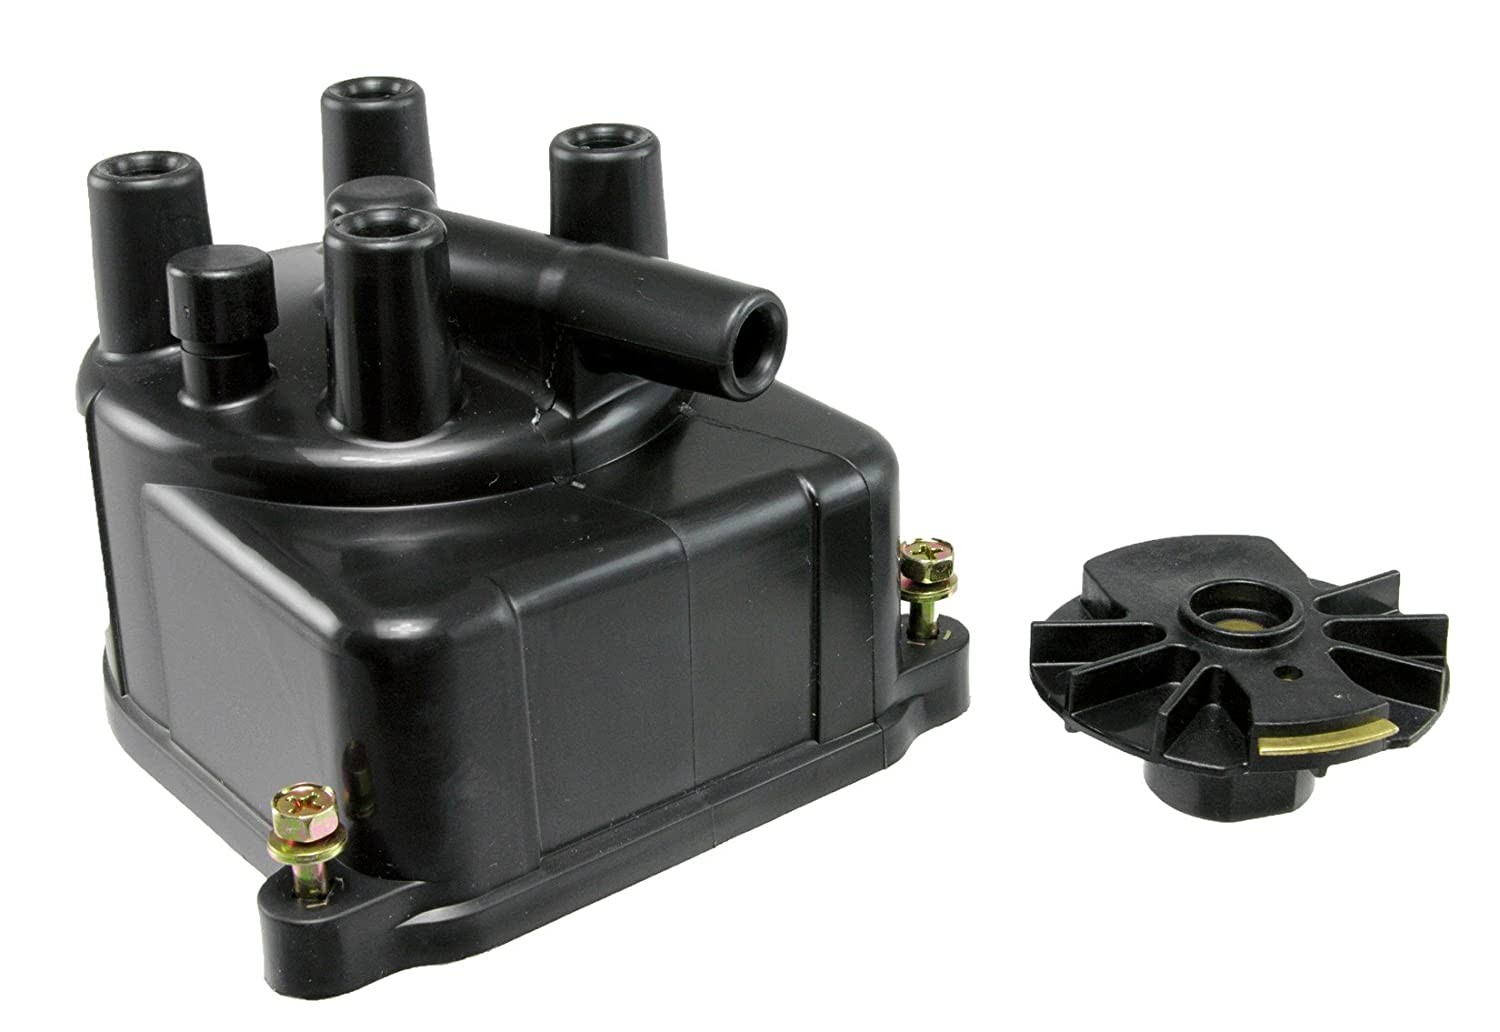 Wells 15618 Distributor Cap and Rotor Kit